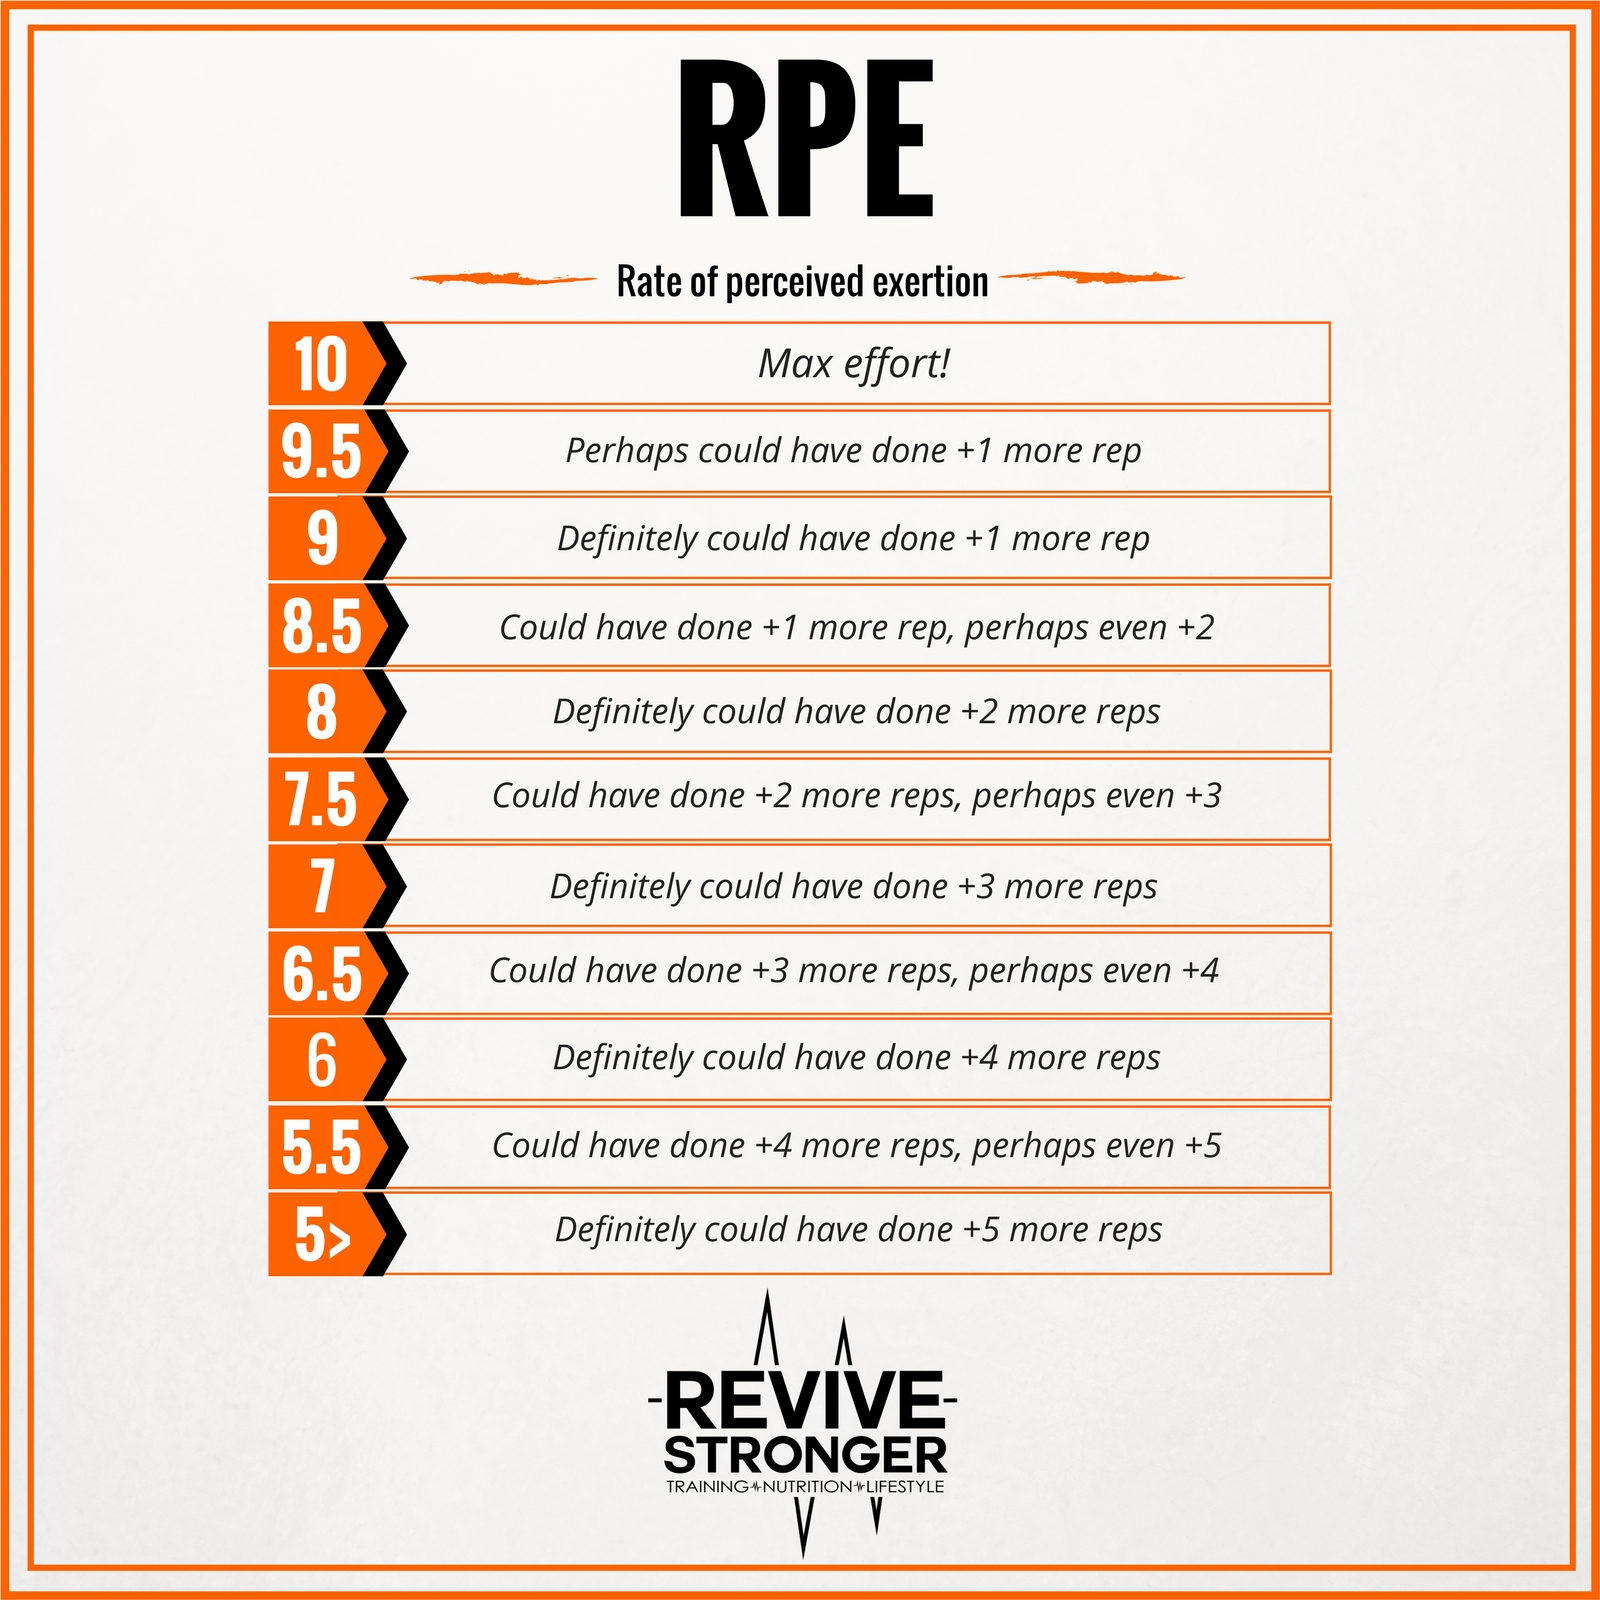 rpe scale images